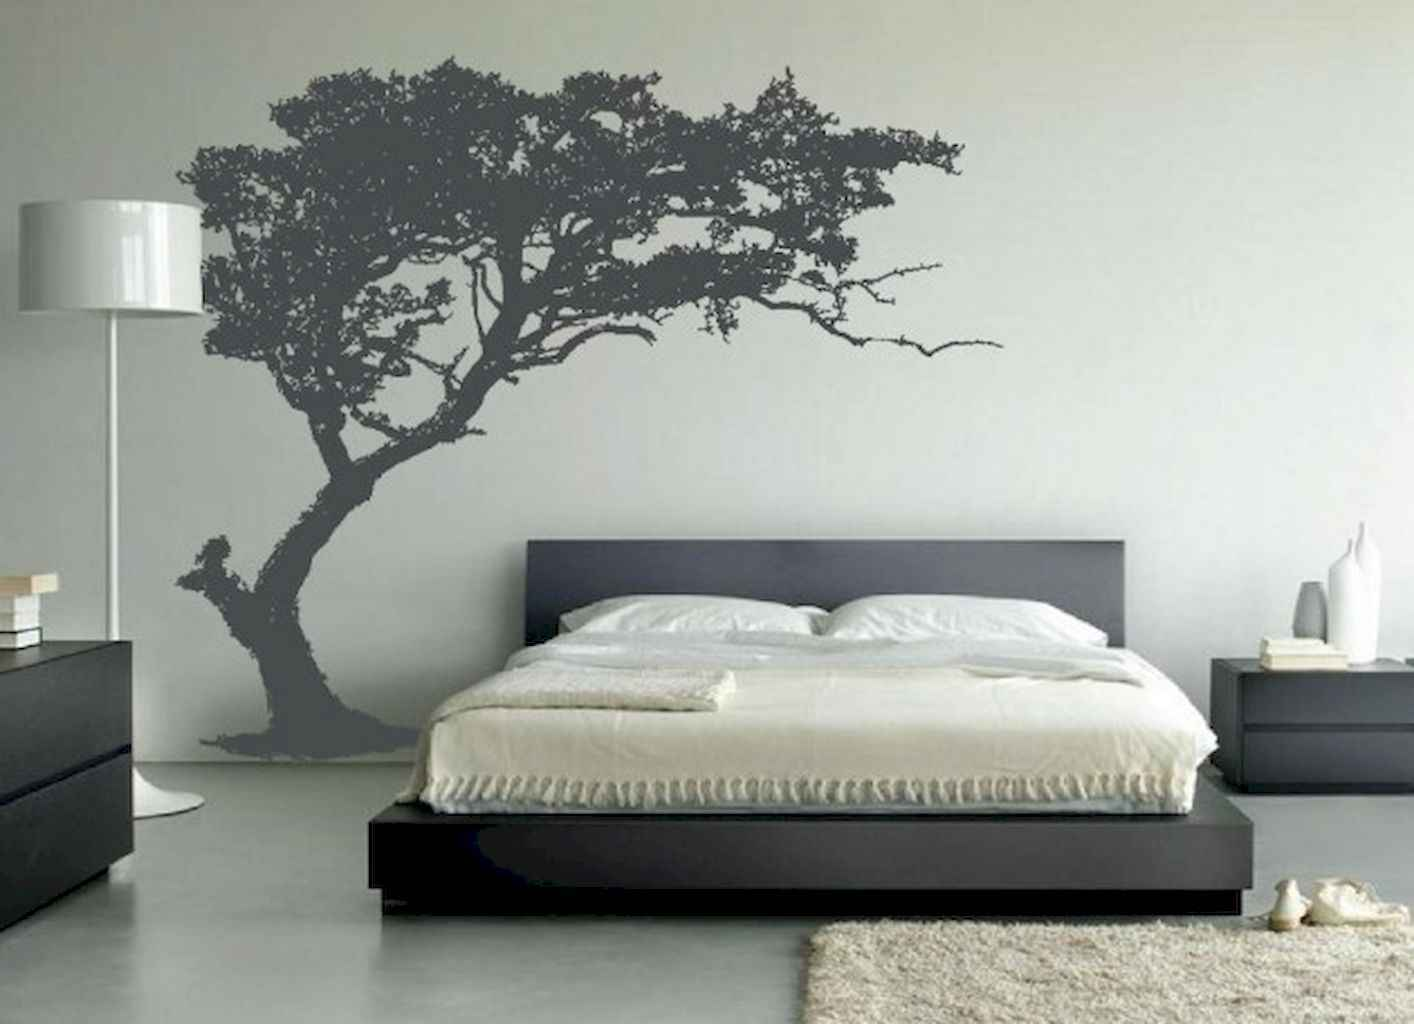 Awesome bedroom decoration ideas (16)